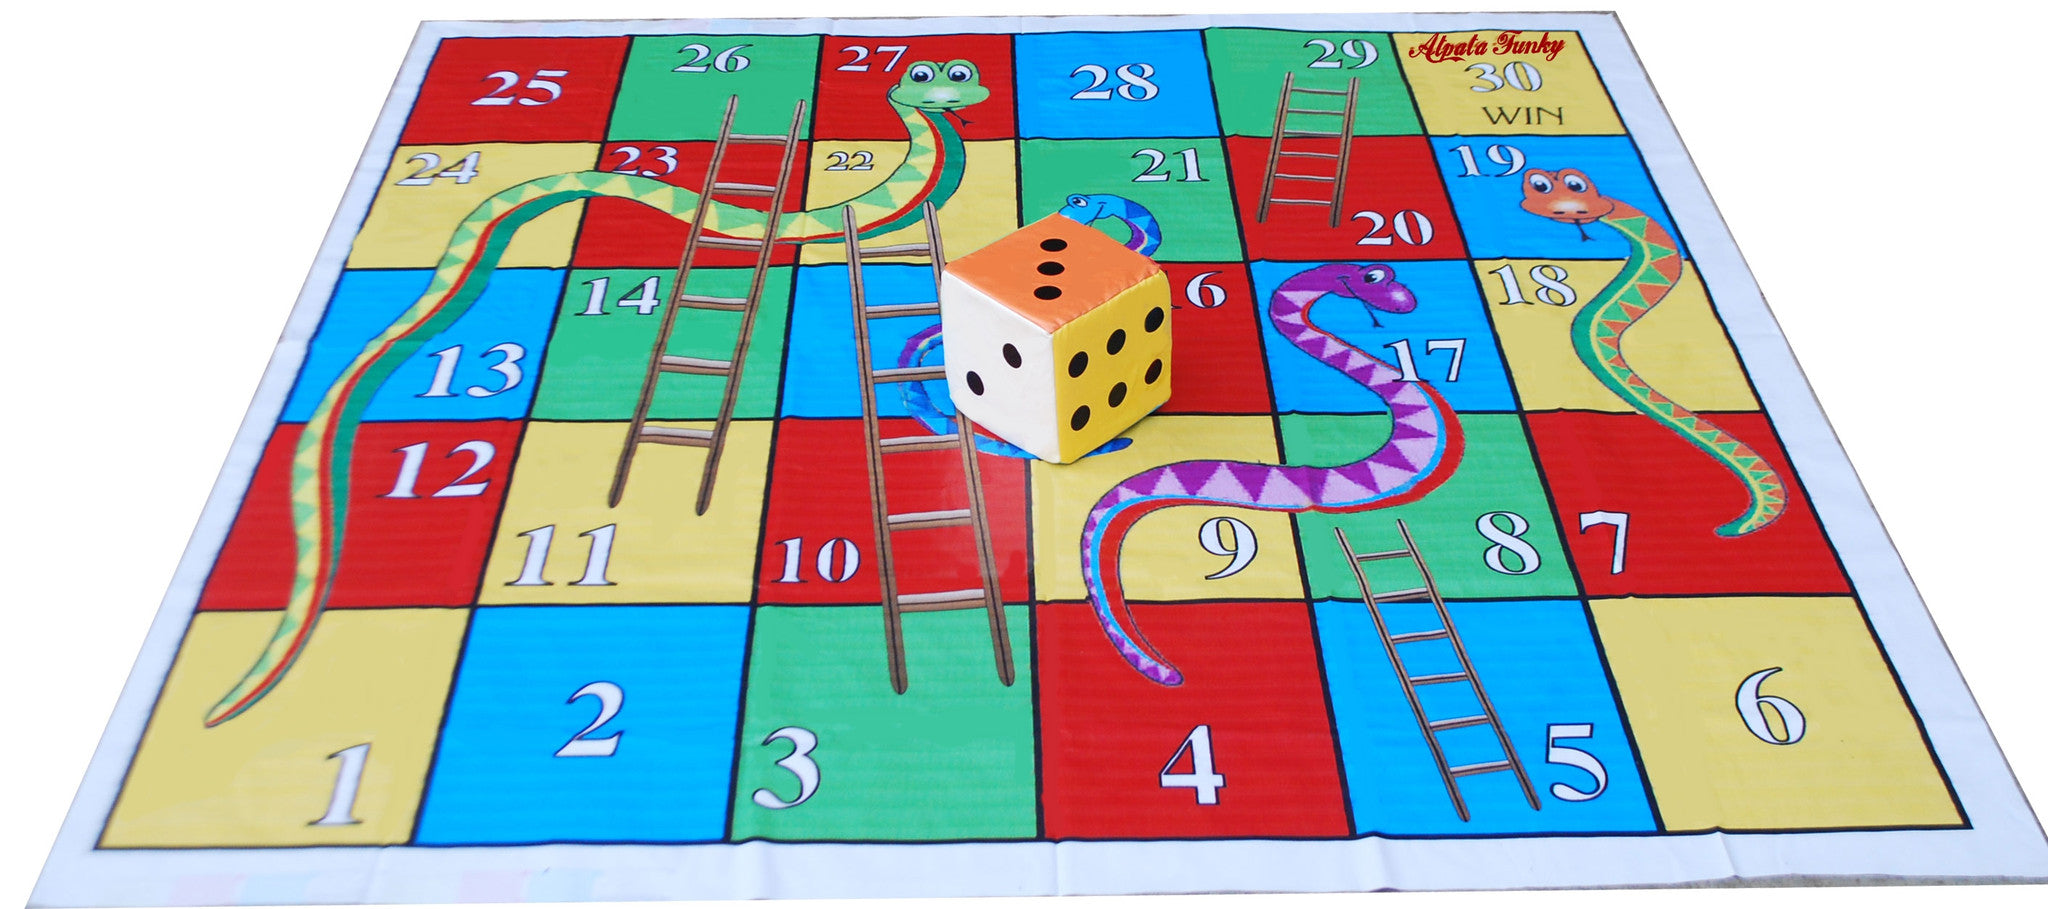 Snakes and ladders floor game meze blog for 10x10 floor mat